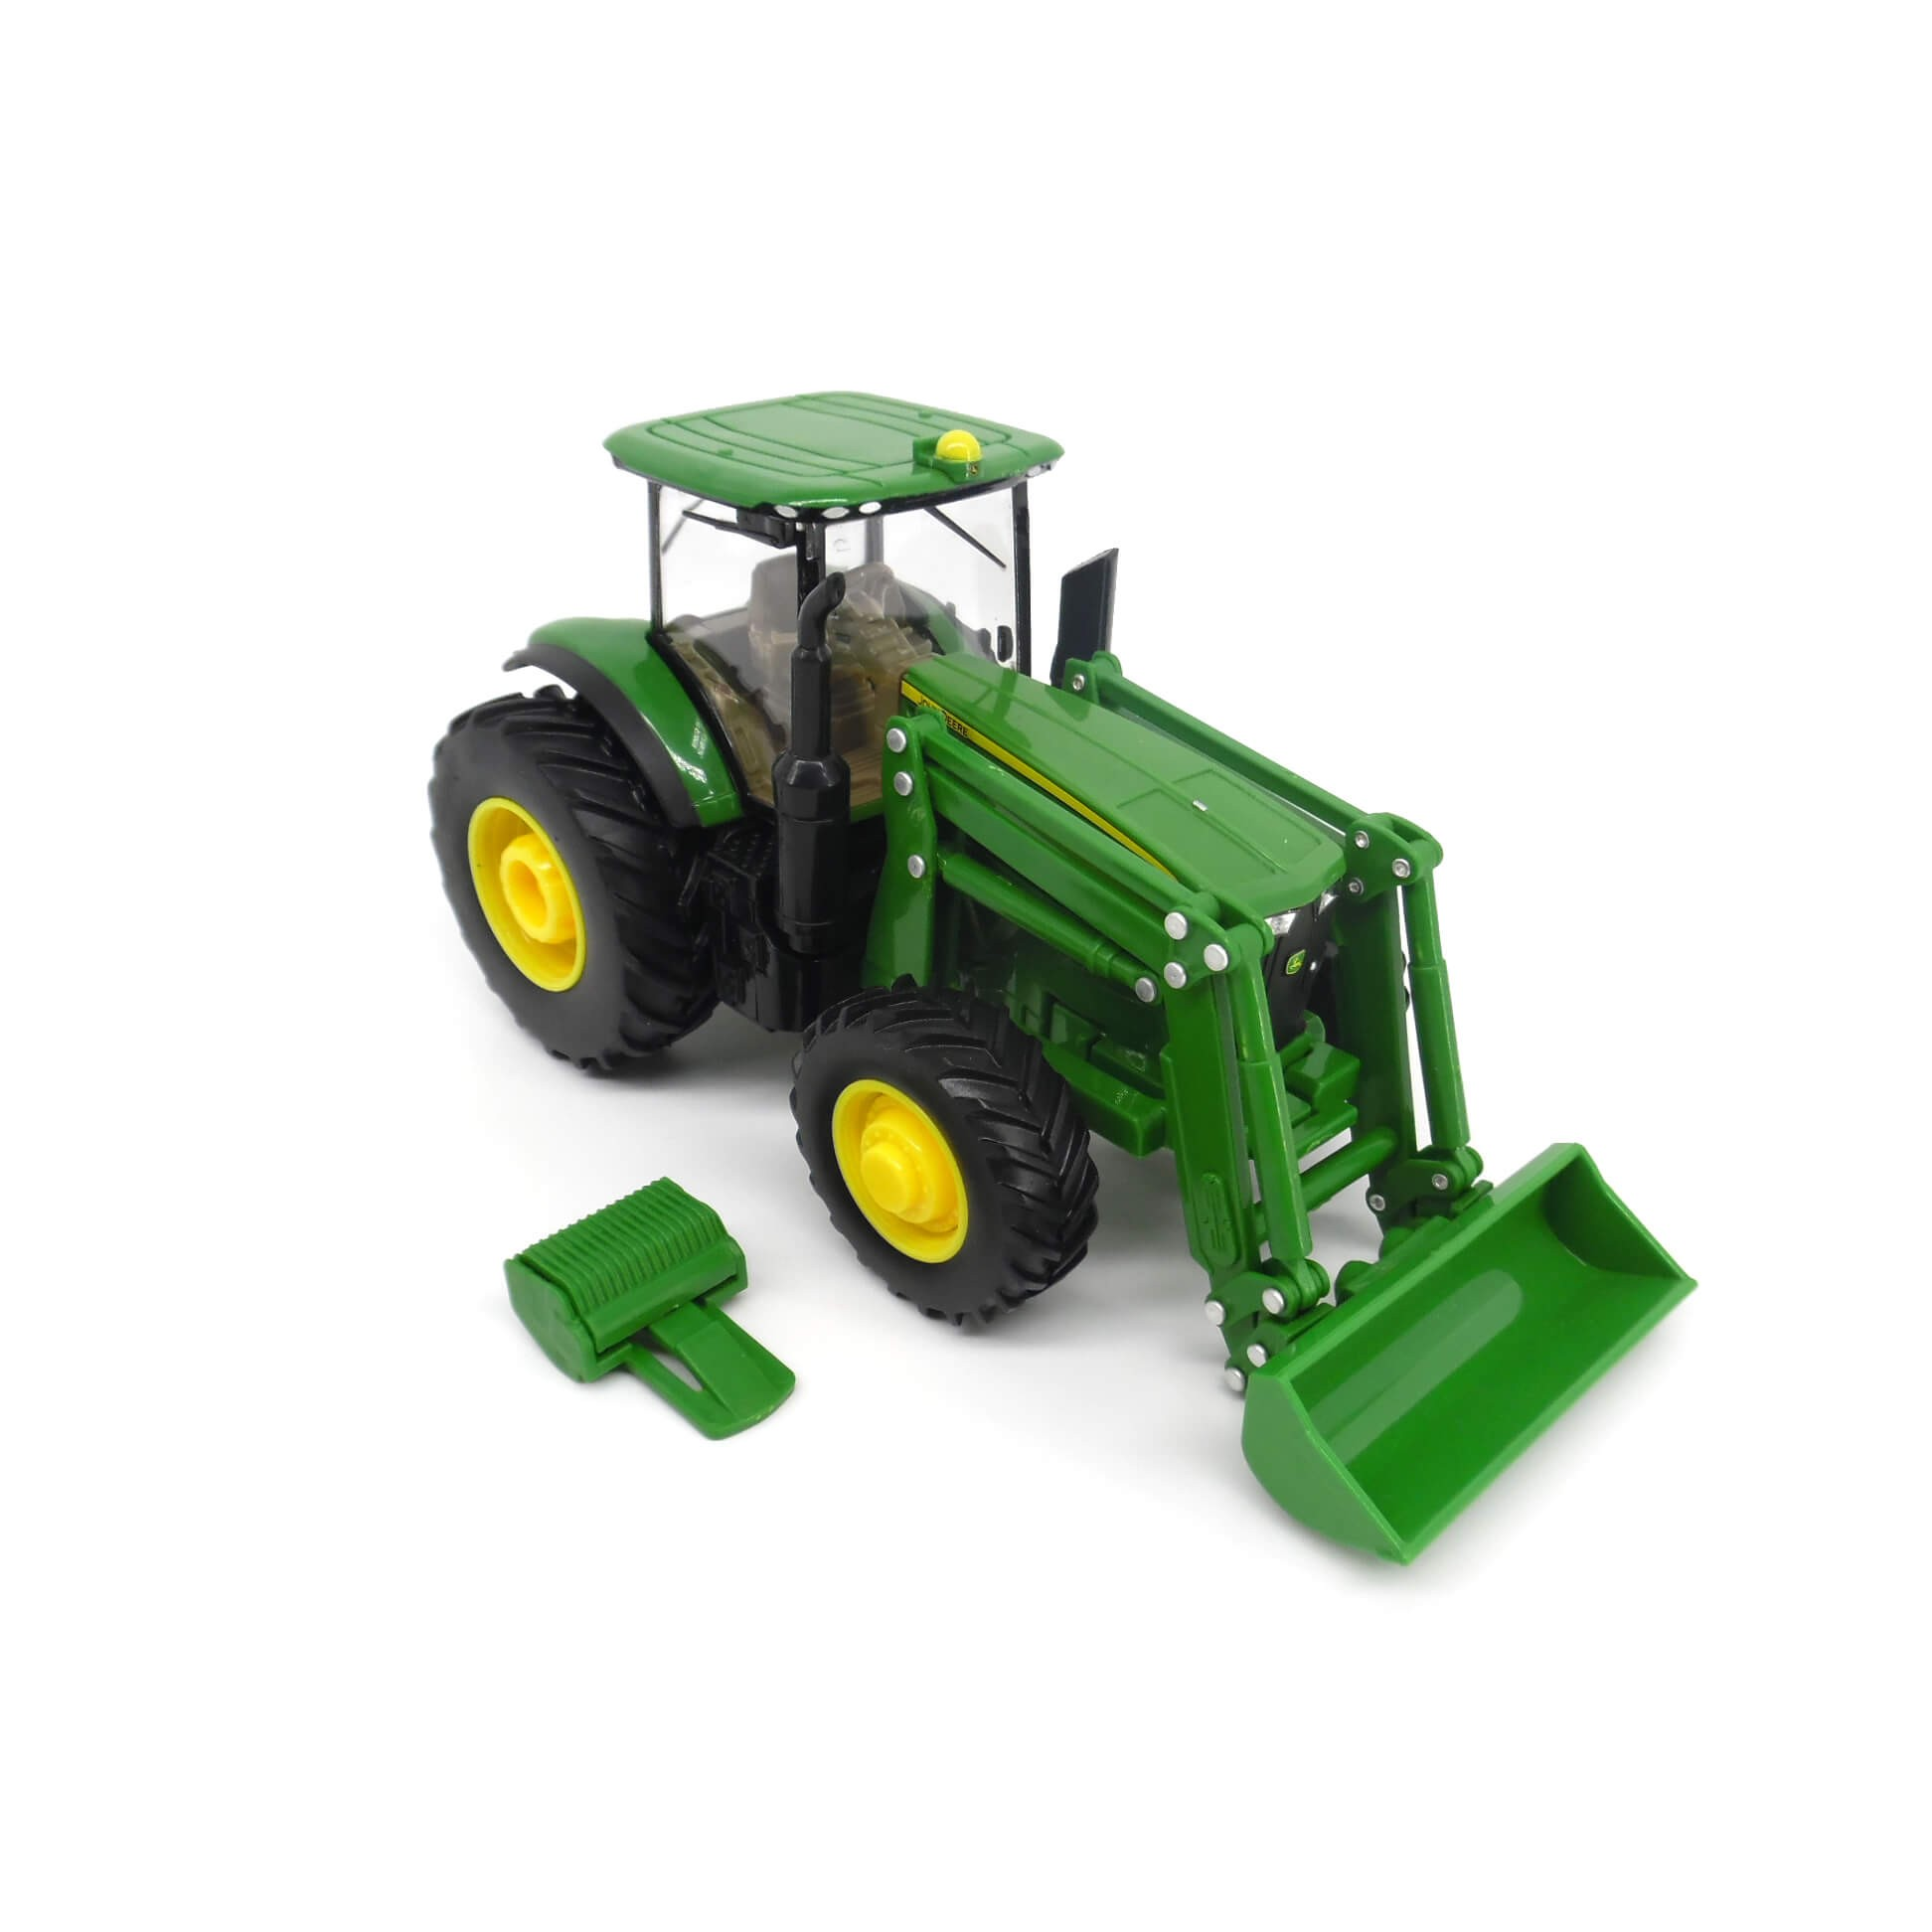 ERTL John Deere 7270R Tractor with Real Duals and Front ...